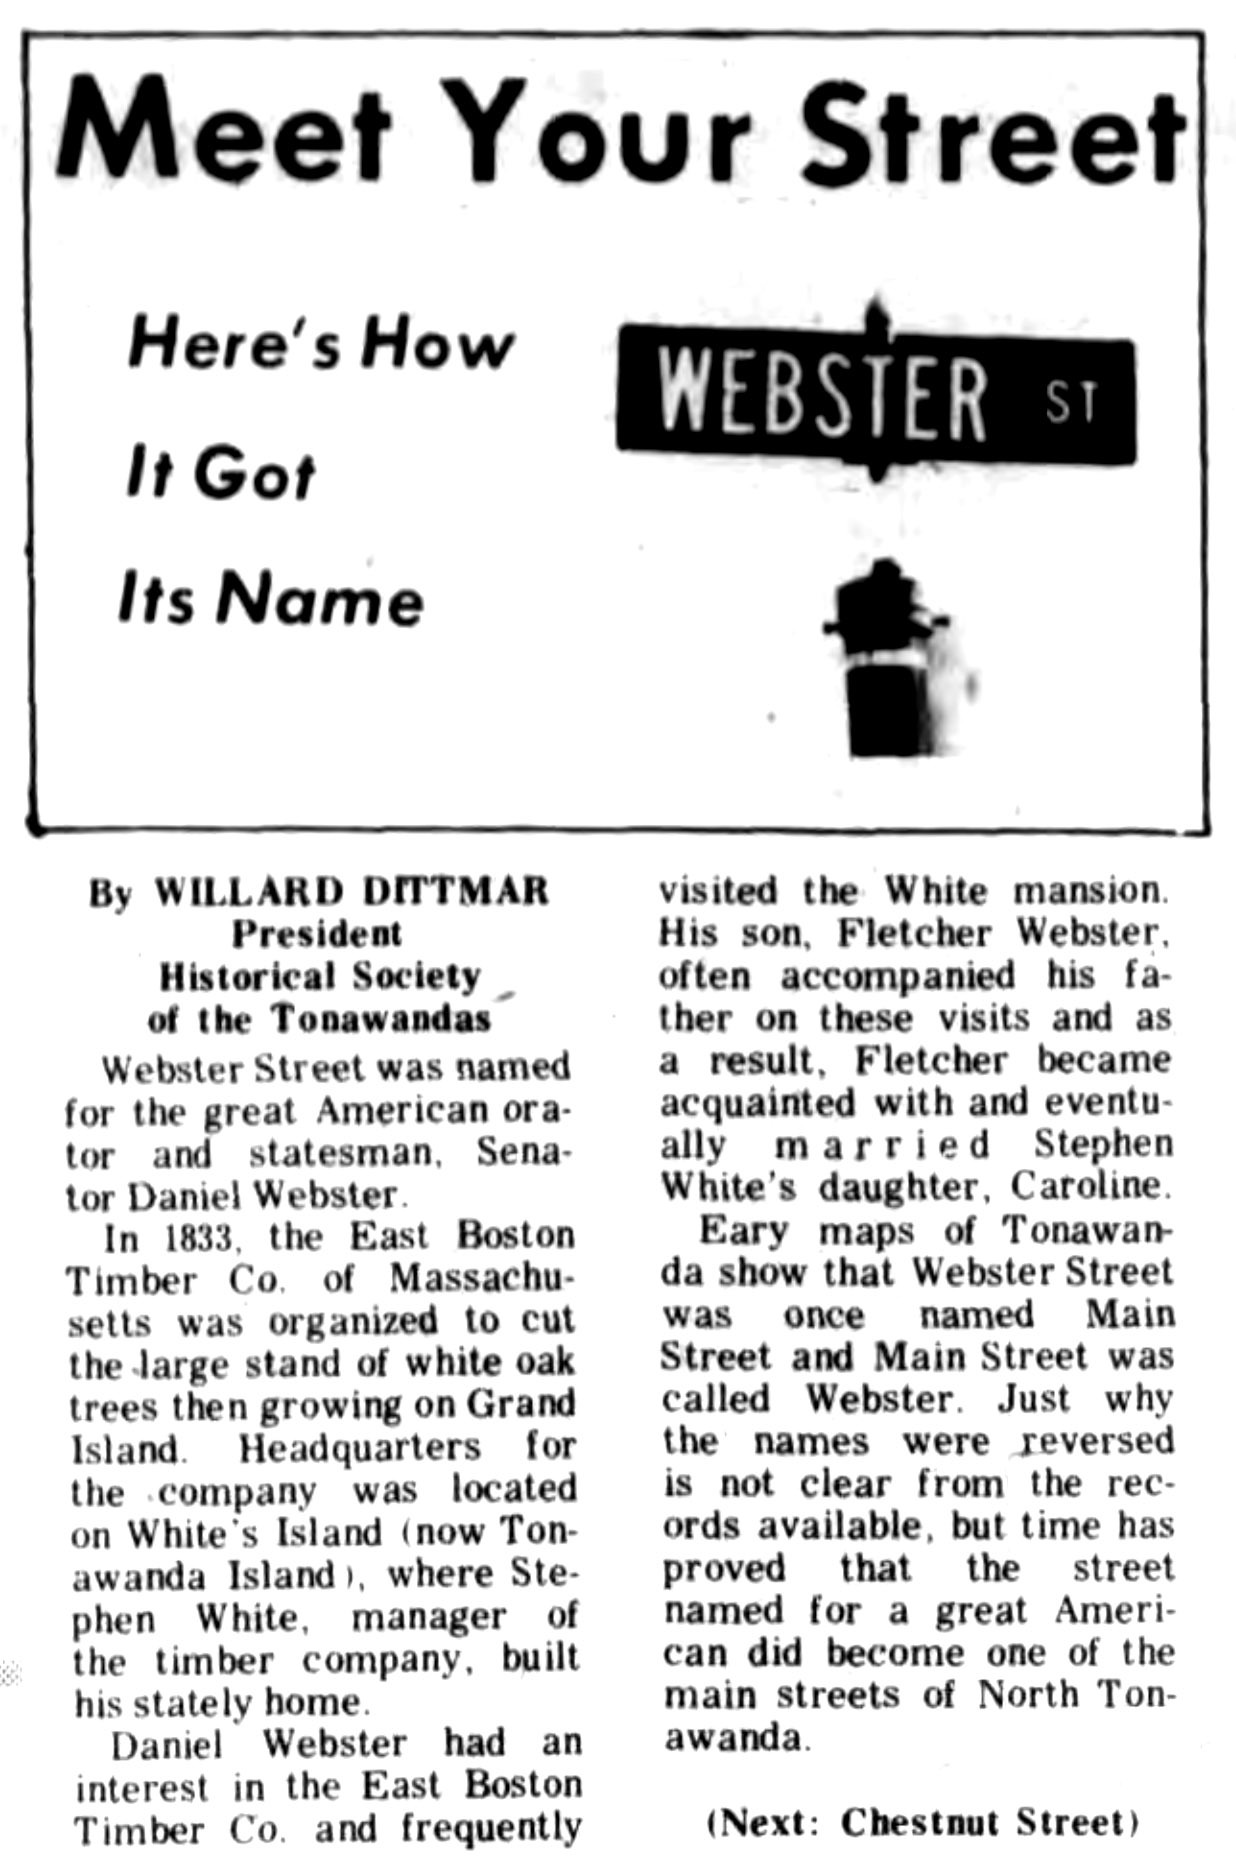 Meet Your Street - Webster Street (Tonawanada News, 1969-10-25).jpg